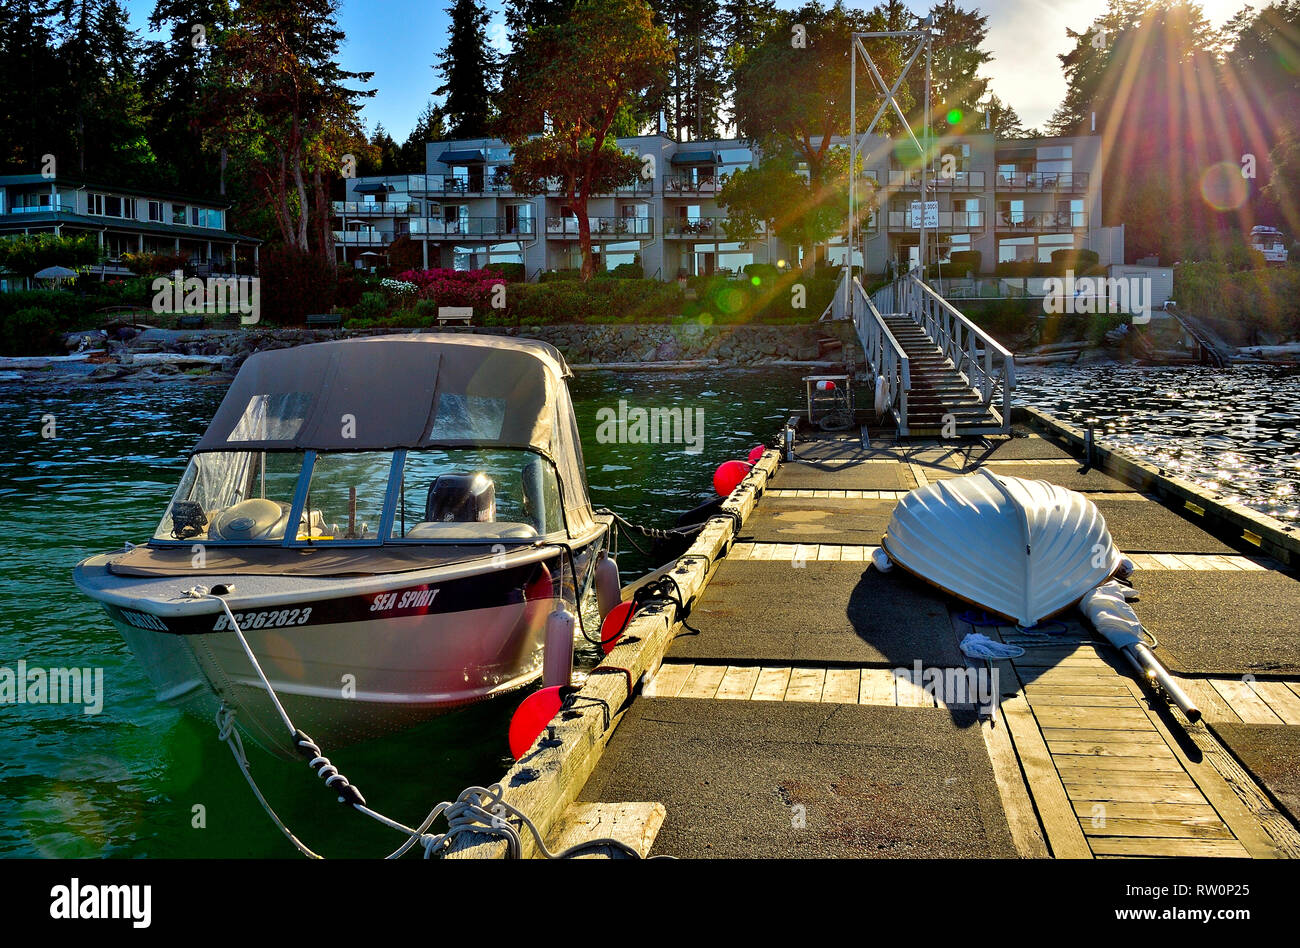 A view looking from the boat dock in toward the buildings at Inn of the Sea resort near Nanaimo on Vancouver Island British Columbia Canada. - Stock Image